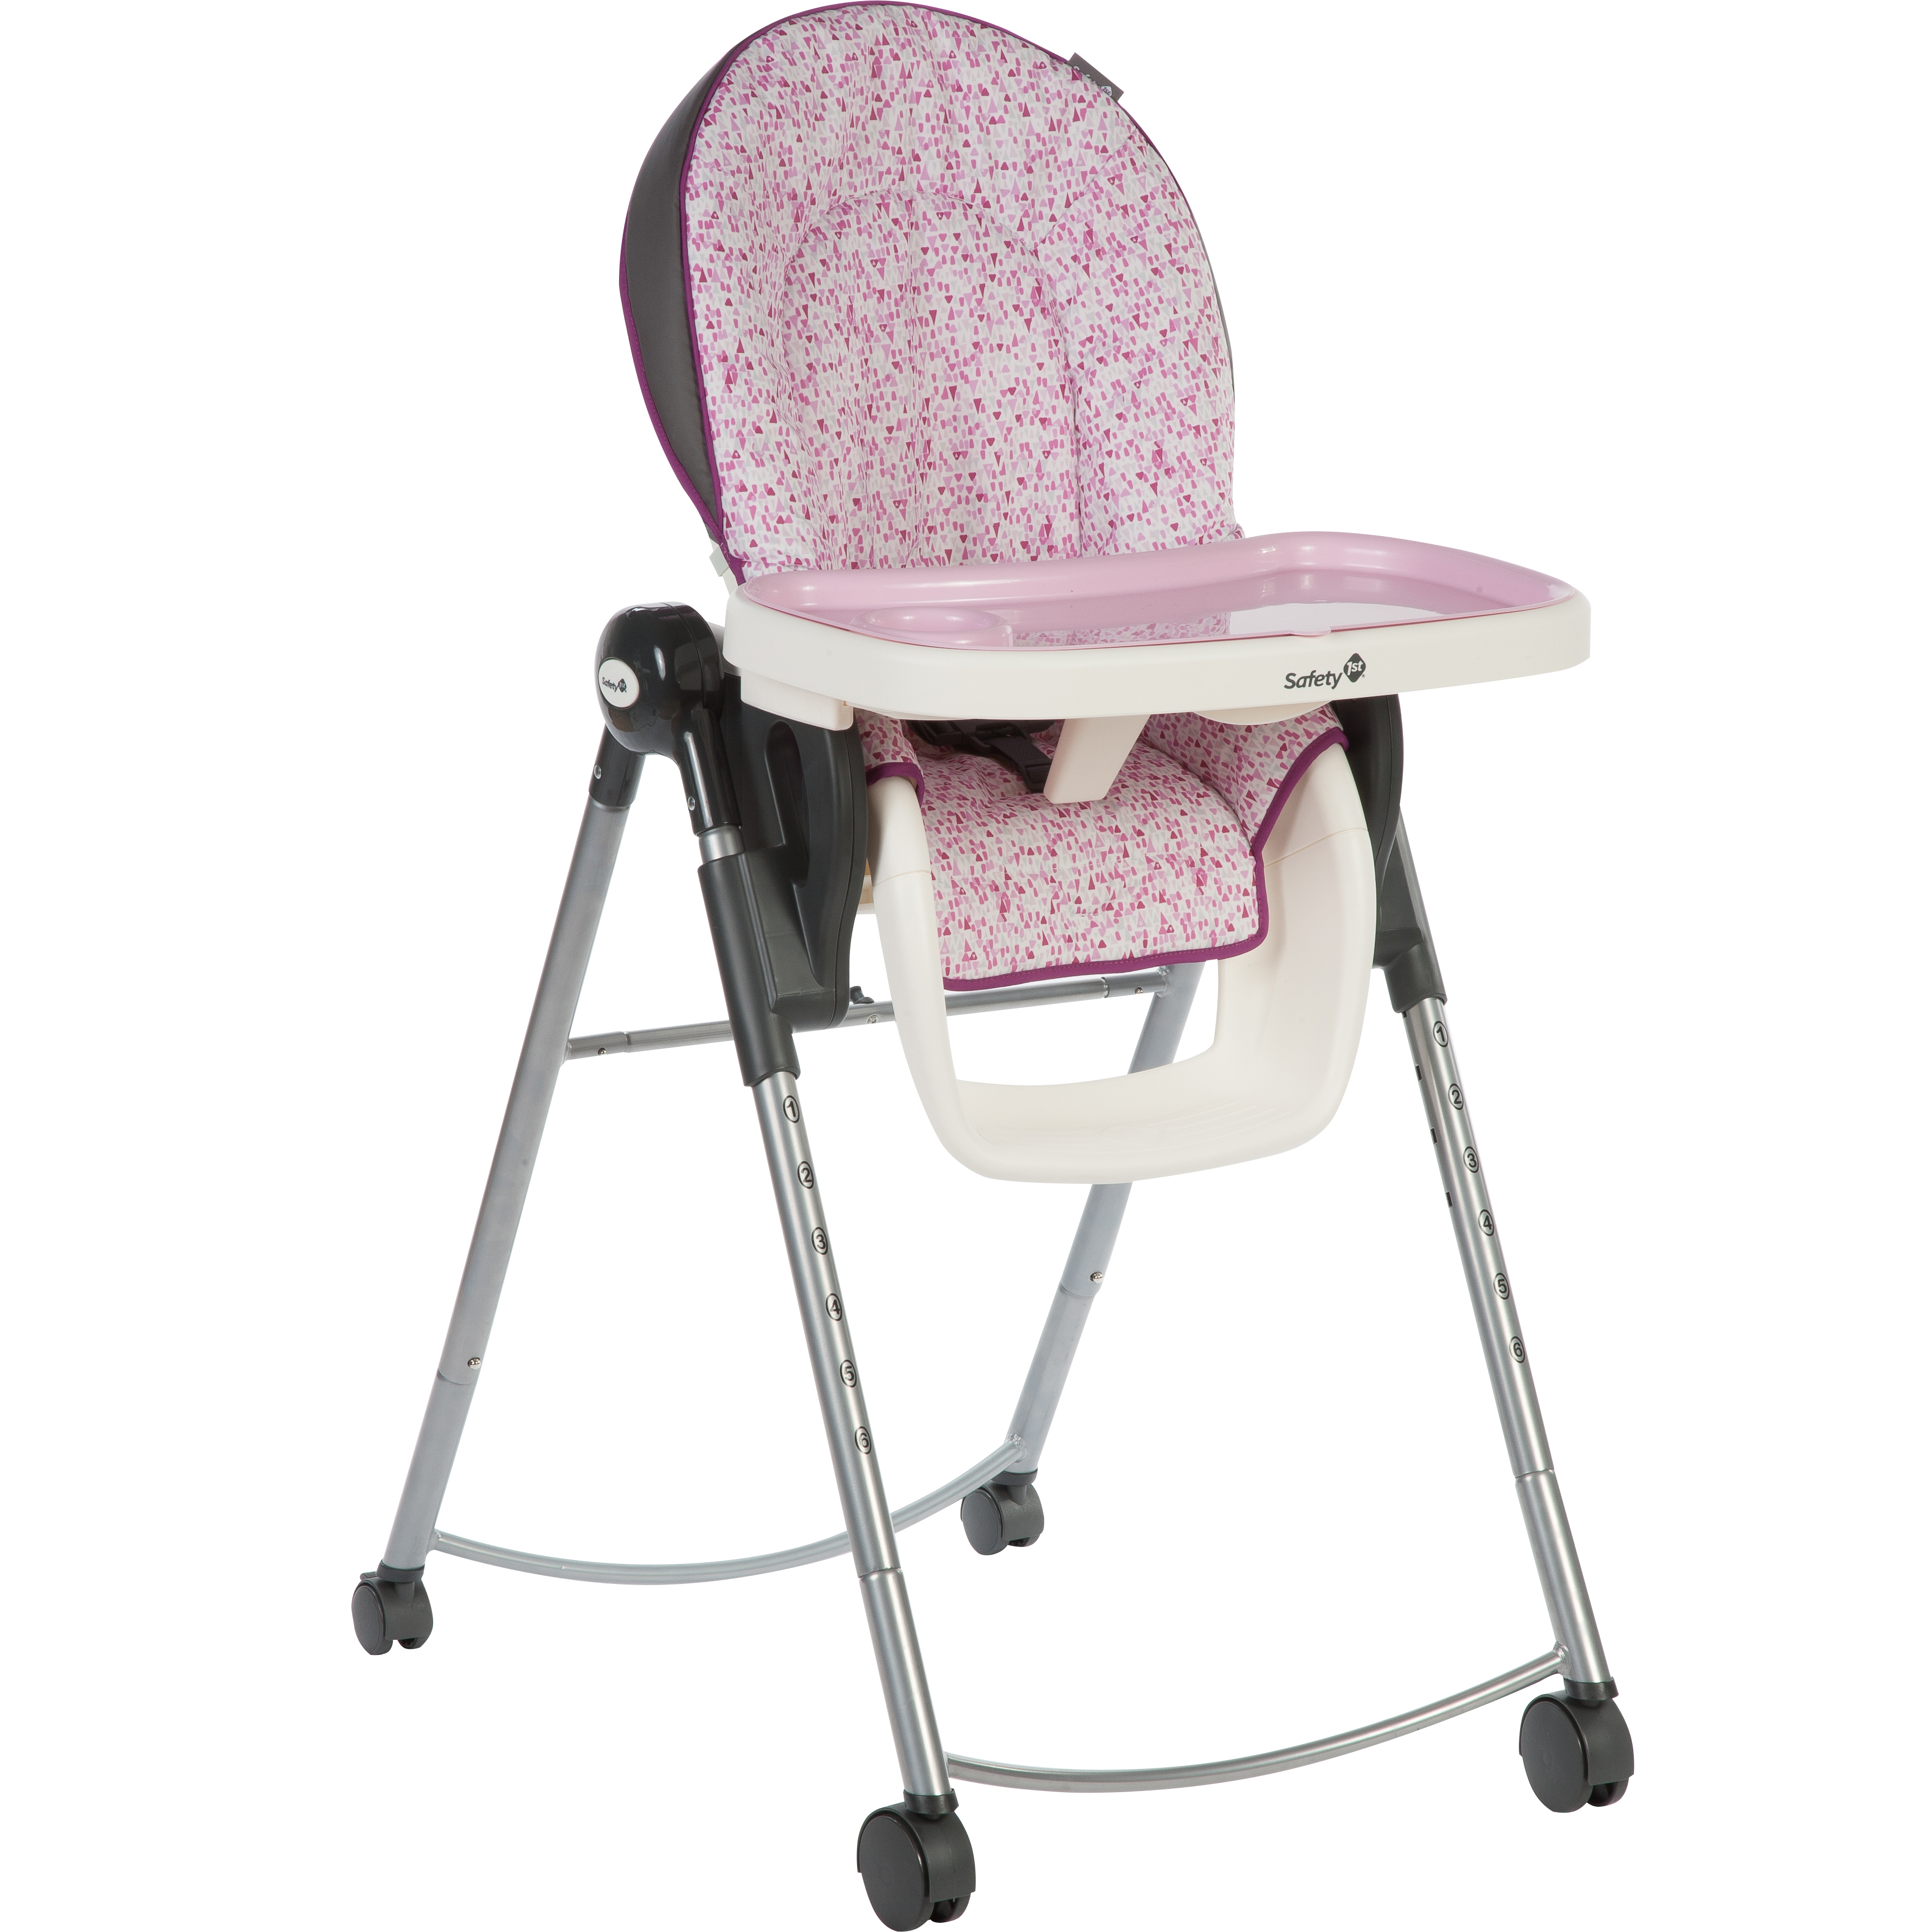 Safety 1ˢᵗ Adaptable High Chair, Sorbet